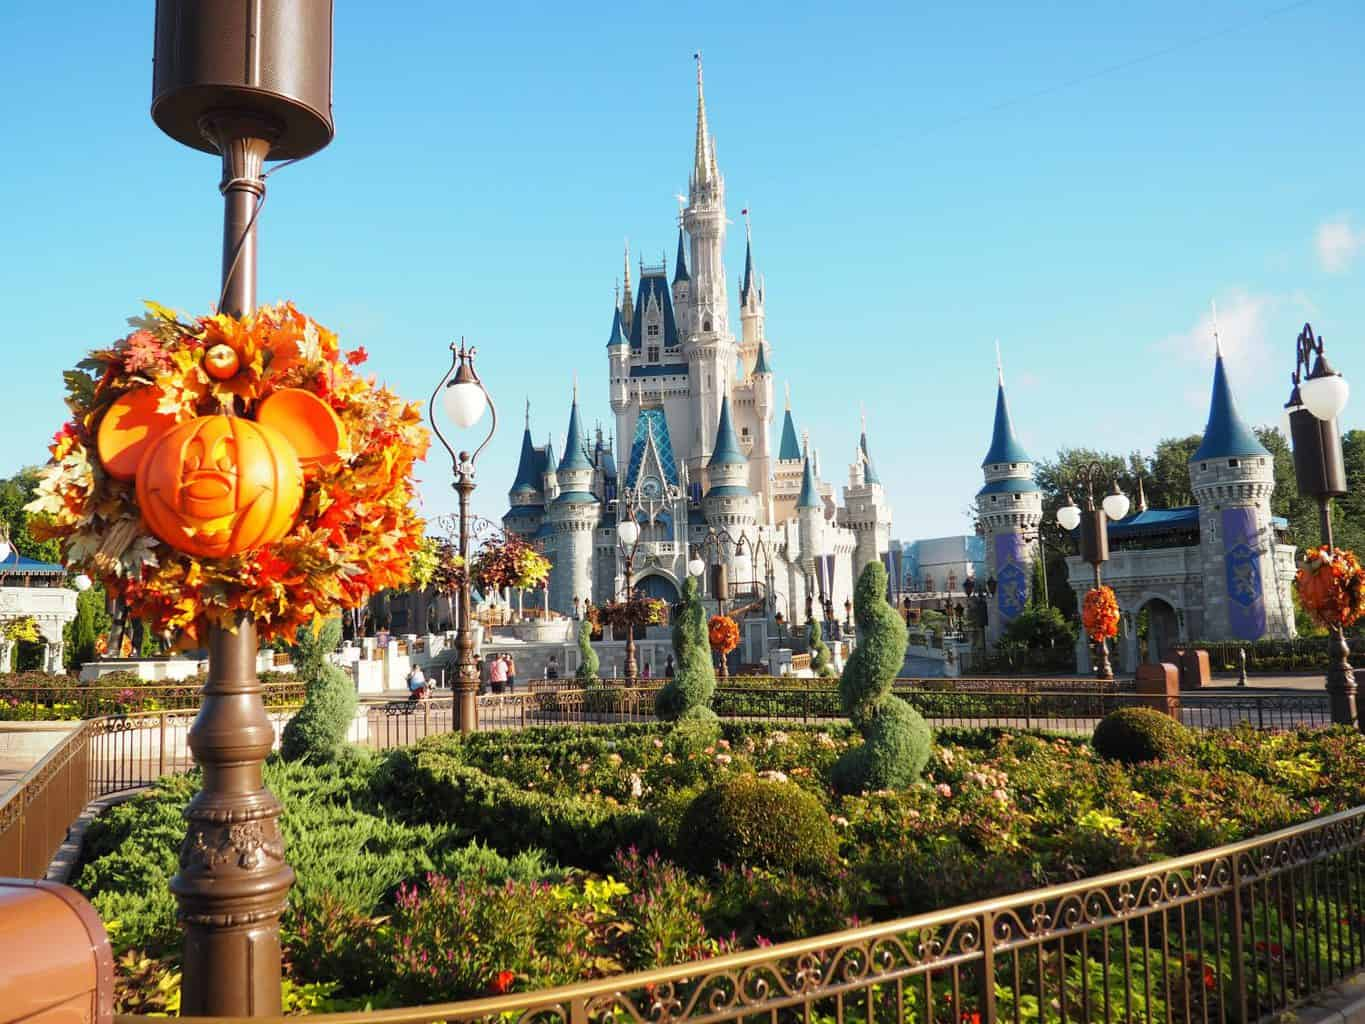 12 things most people don't tell you about Walt Disney World